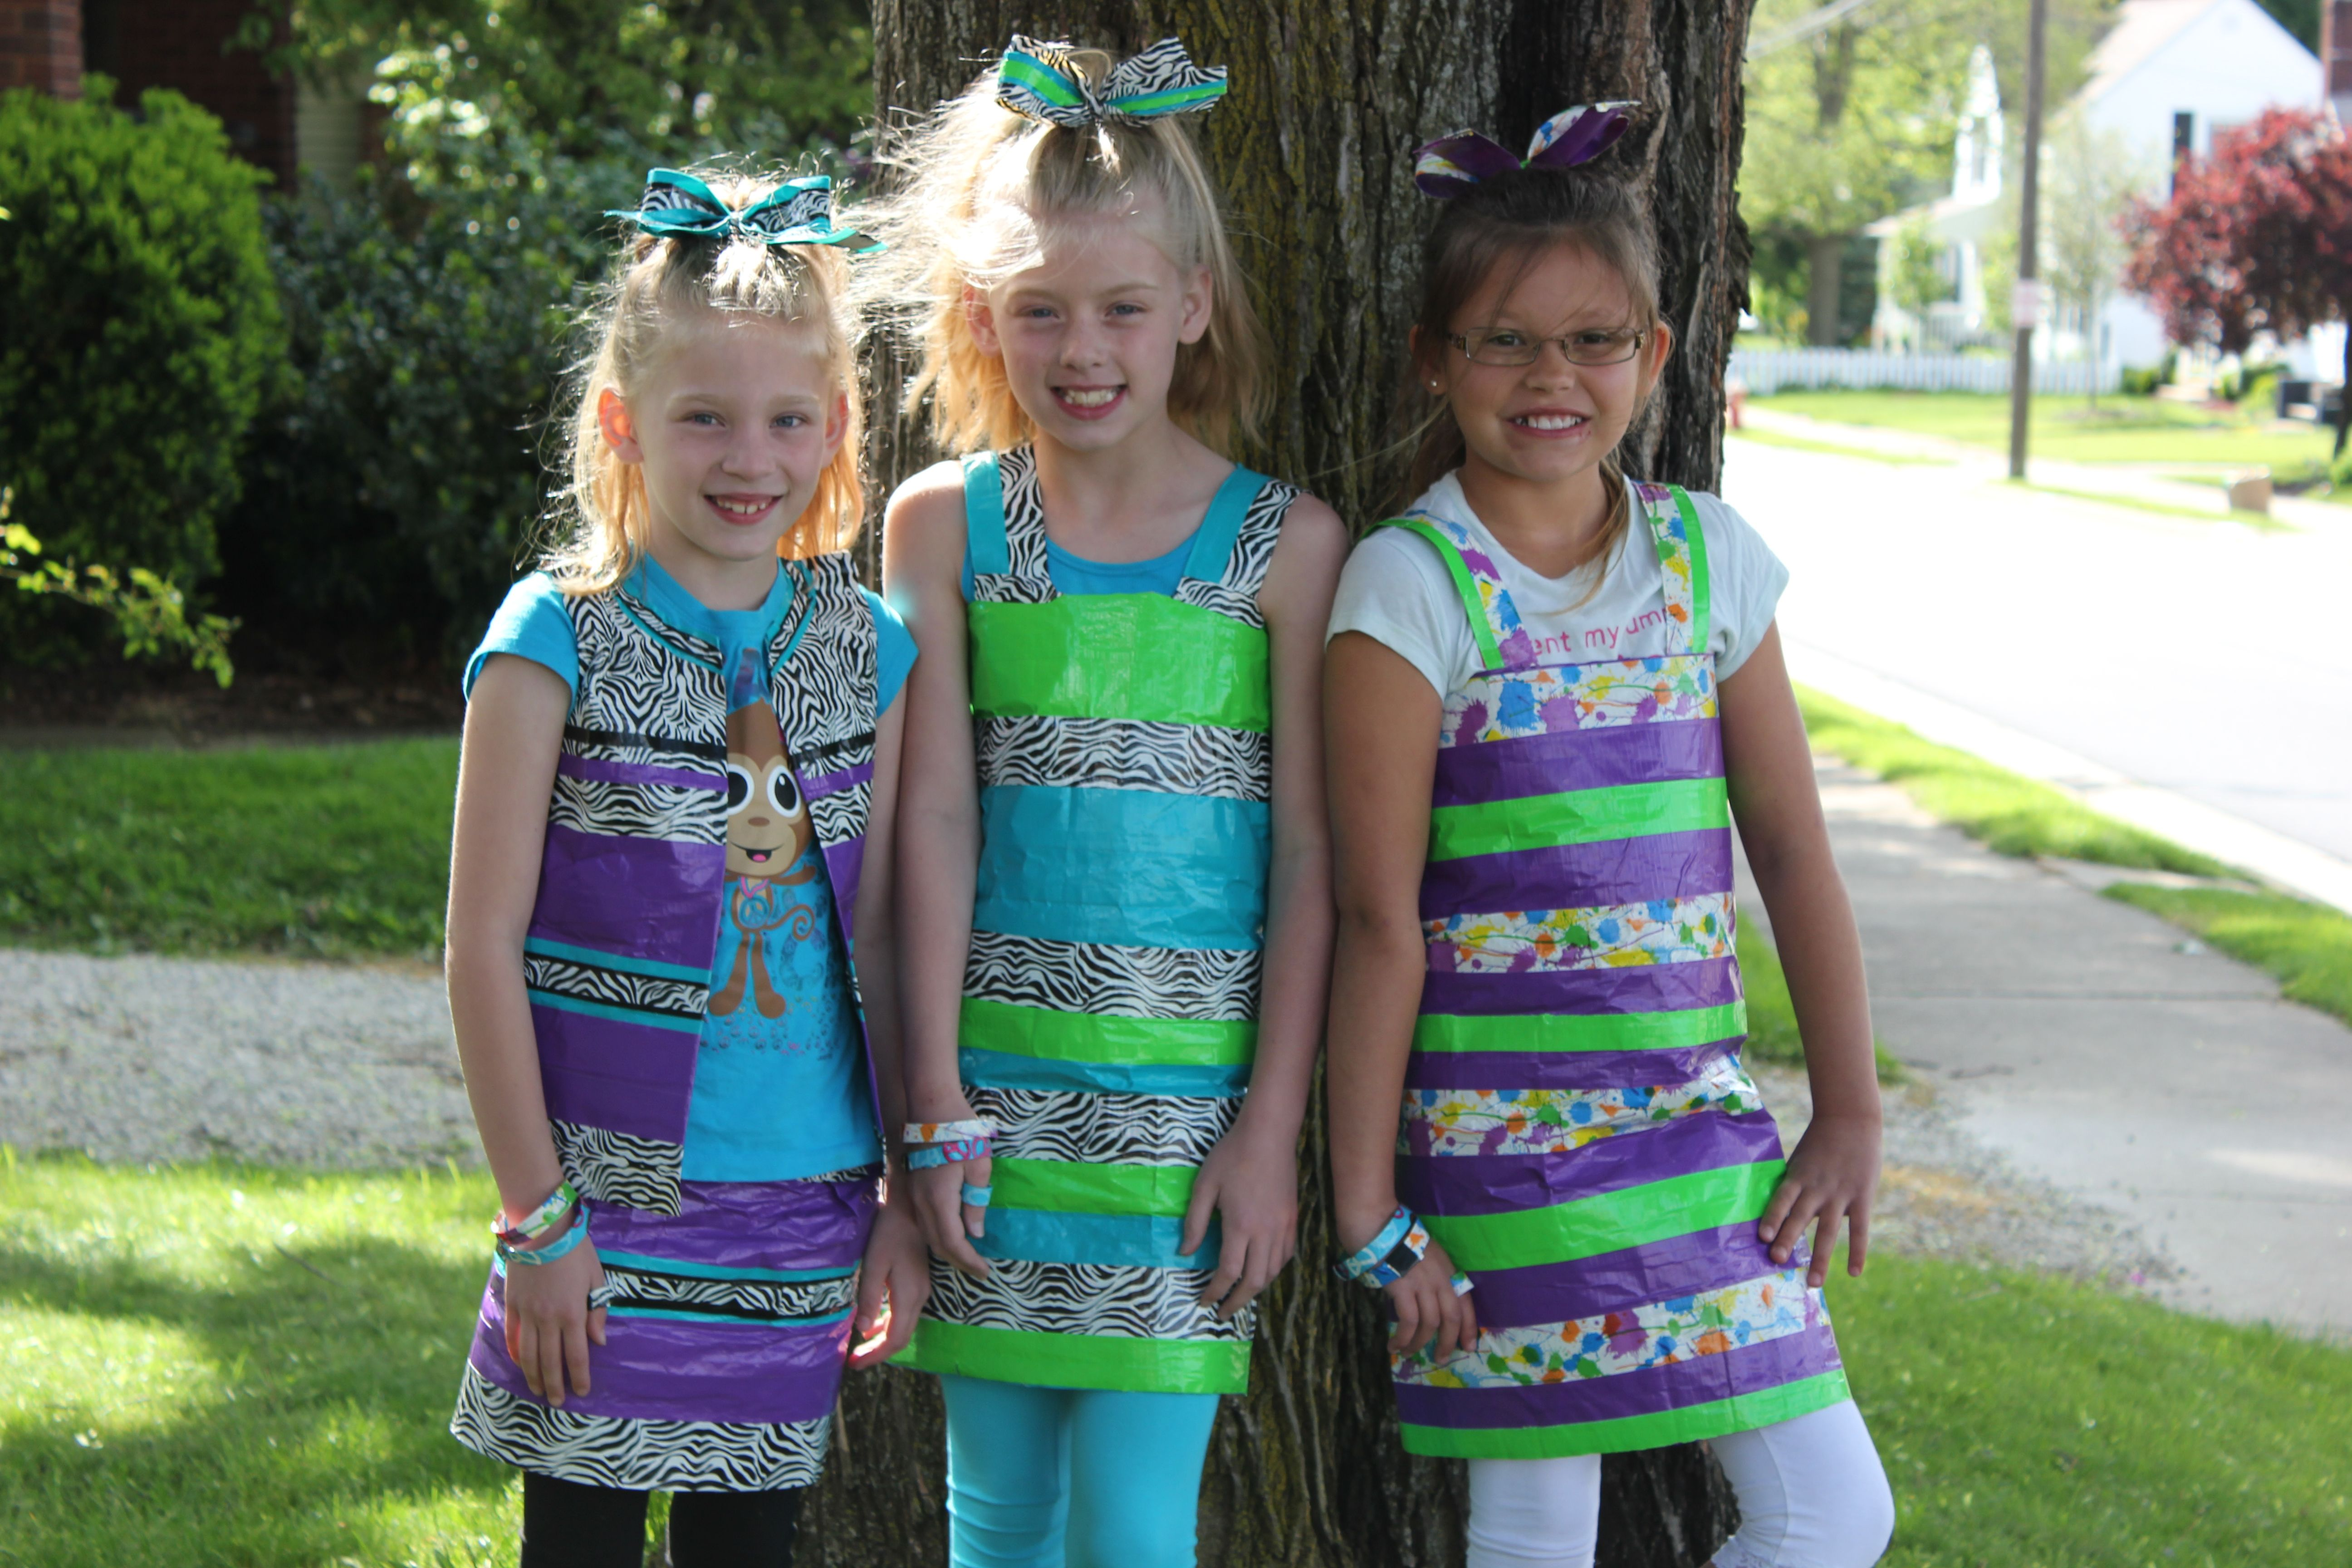 Duct tape dresses, hairbows, bracelets and rings for duct ... | 5184 x 3456 jpeg 1382kB